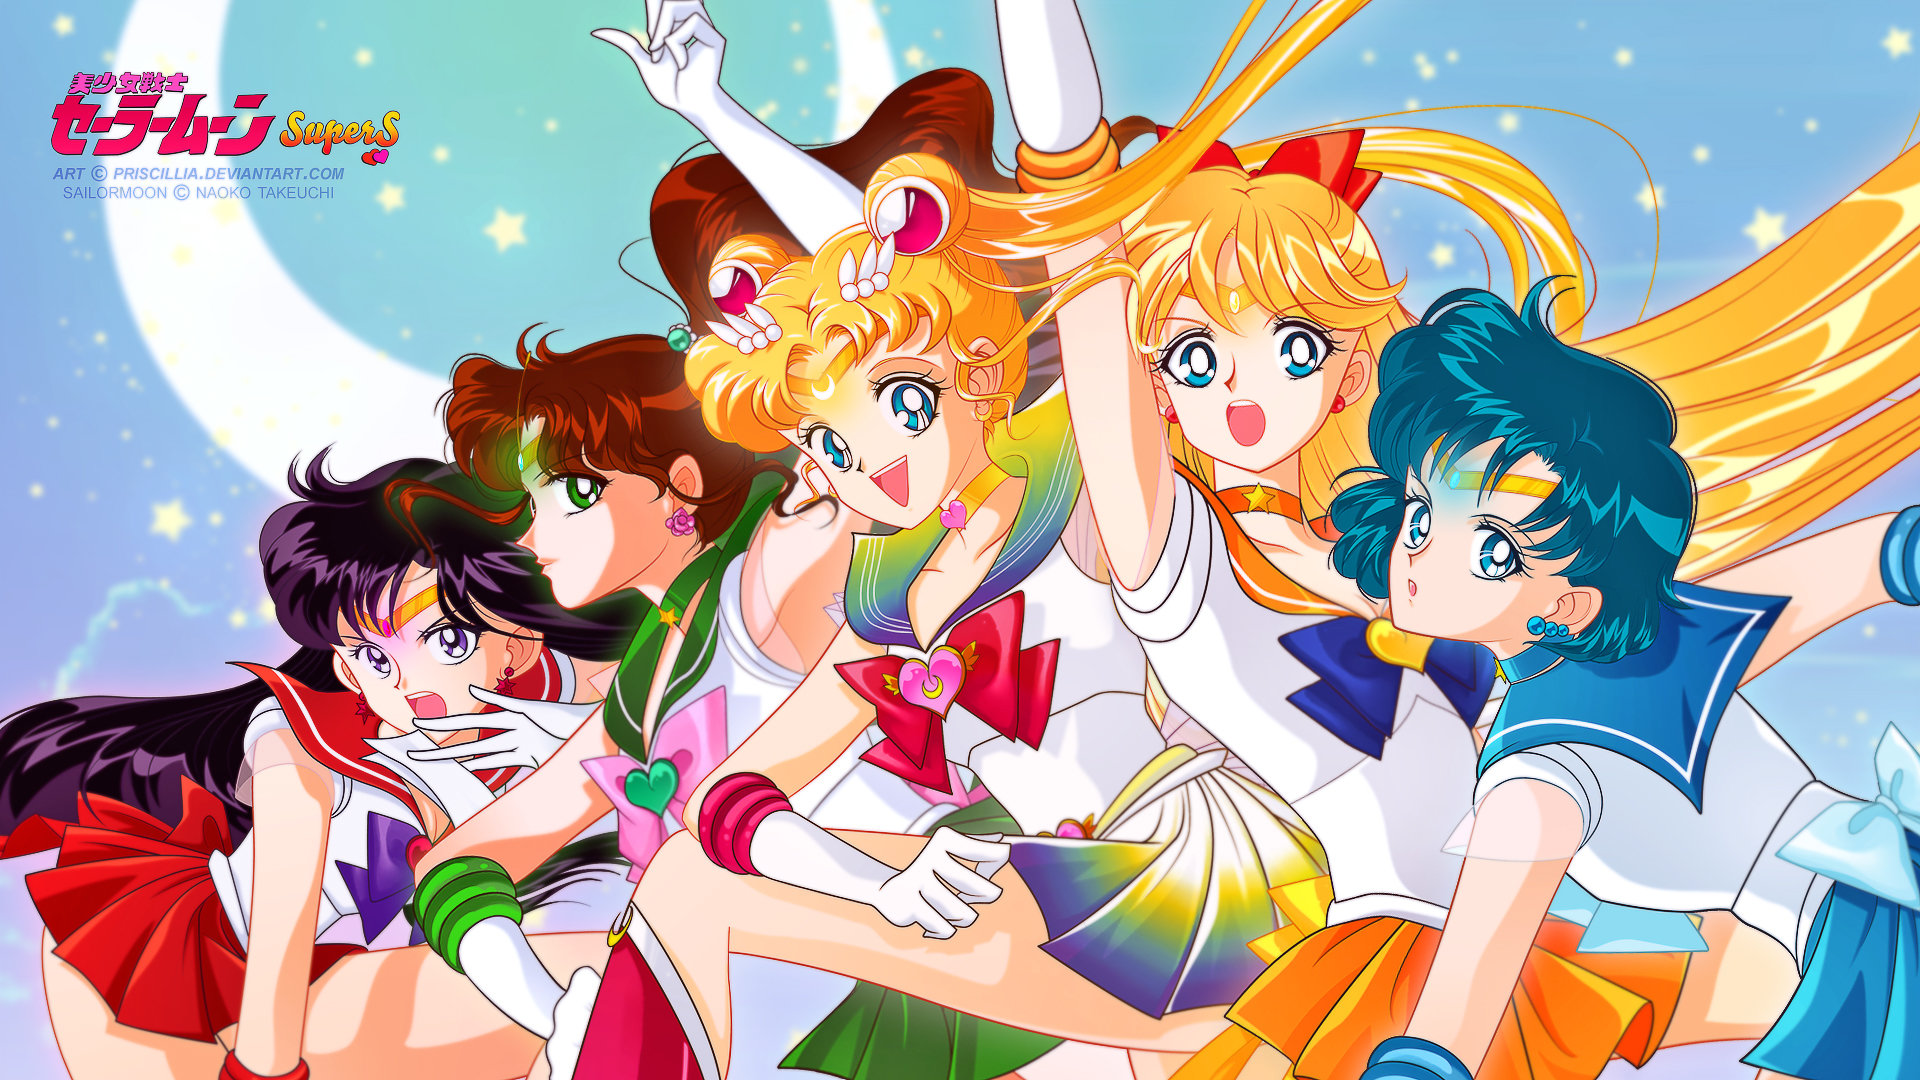 free download sailor moon wallpaper id419568 full hd 1920x1080 for pc